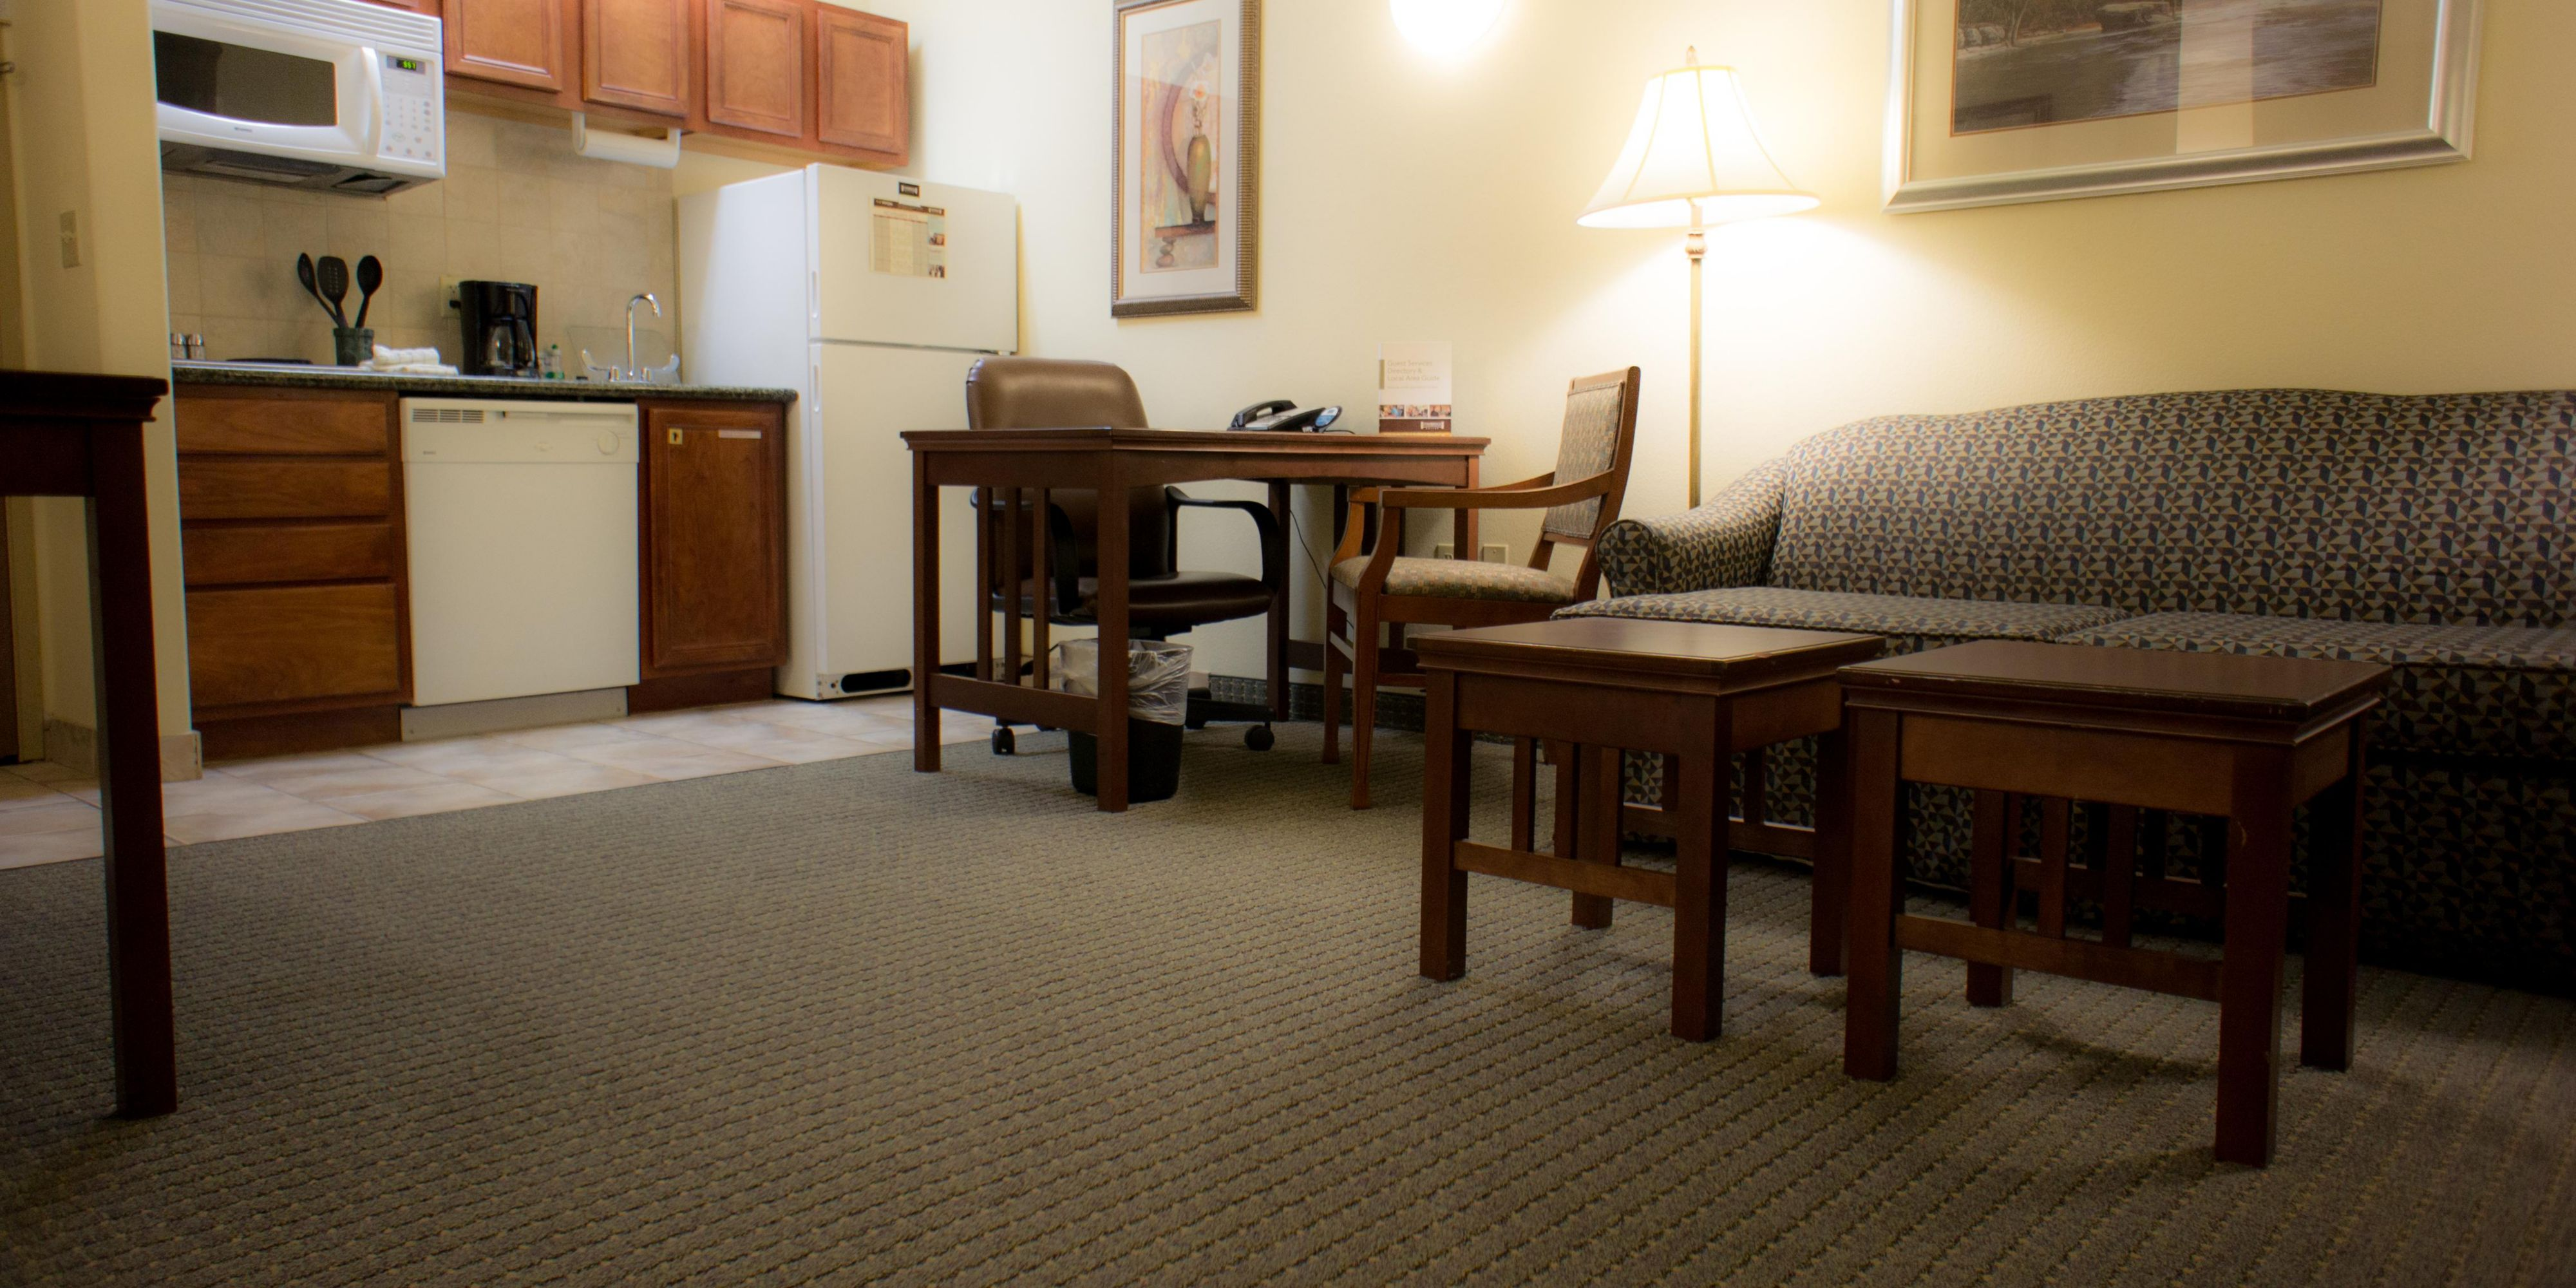 San Angelo Hotels: Staybridge Suites San Angelo   Extended Stay Hotel In San  Angelo, Texas